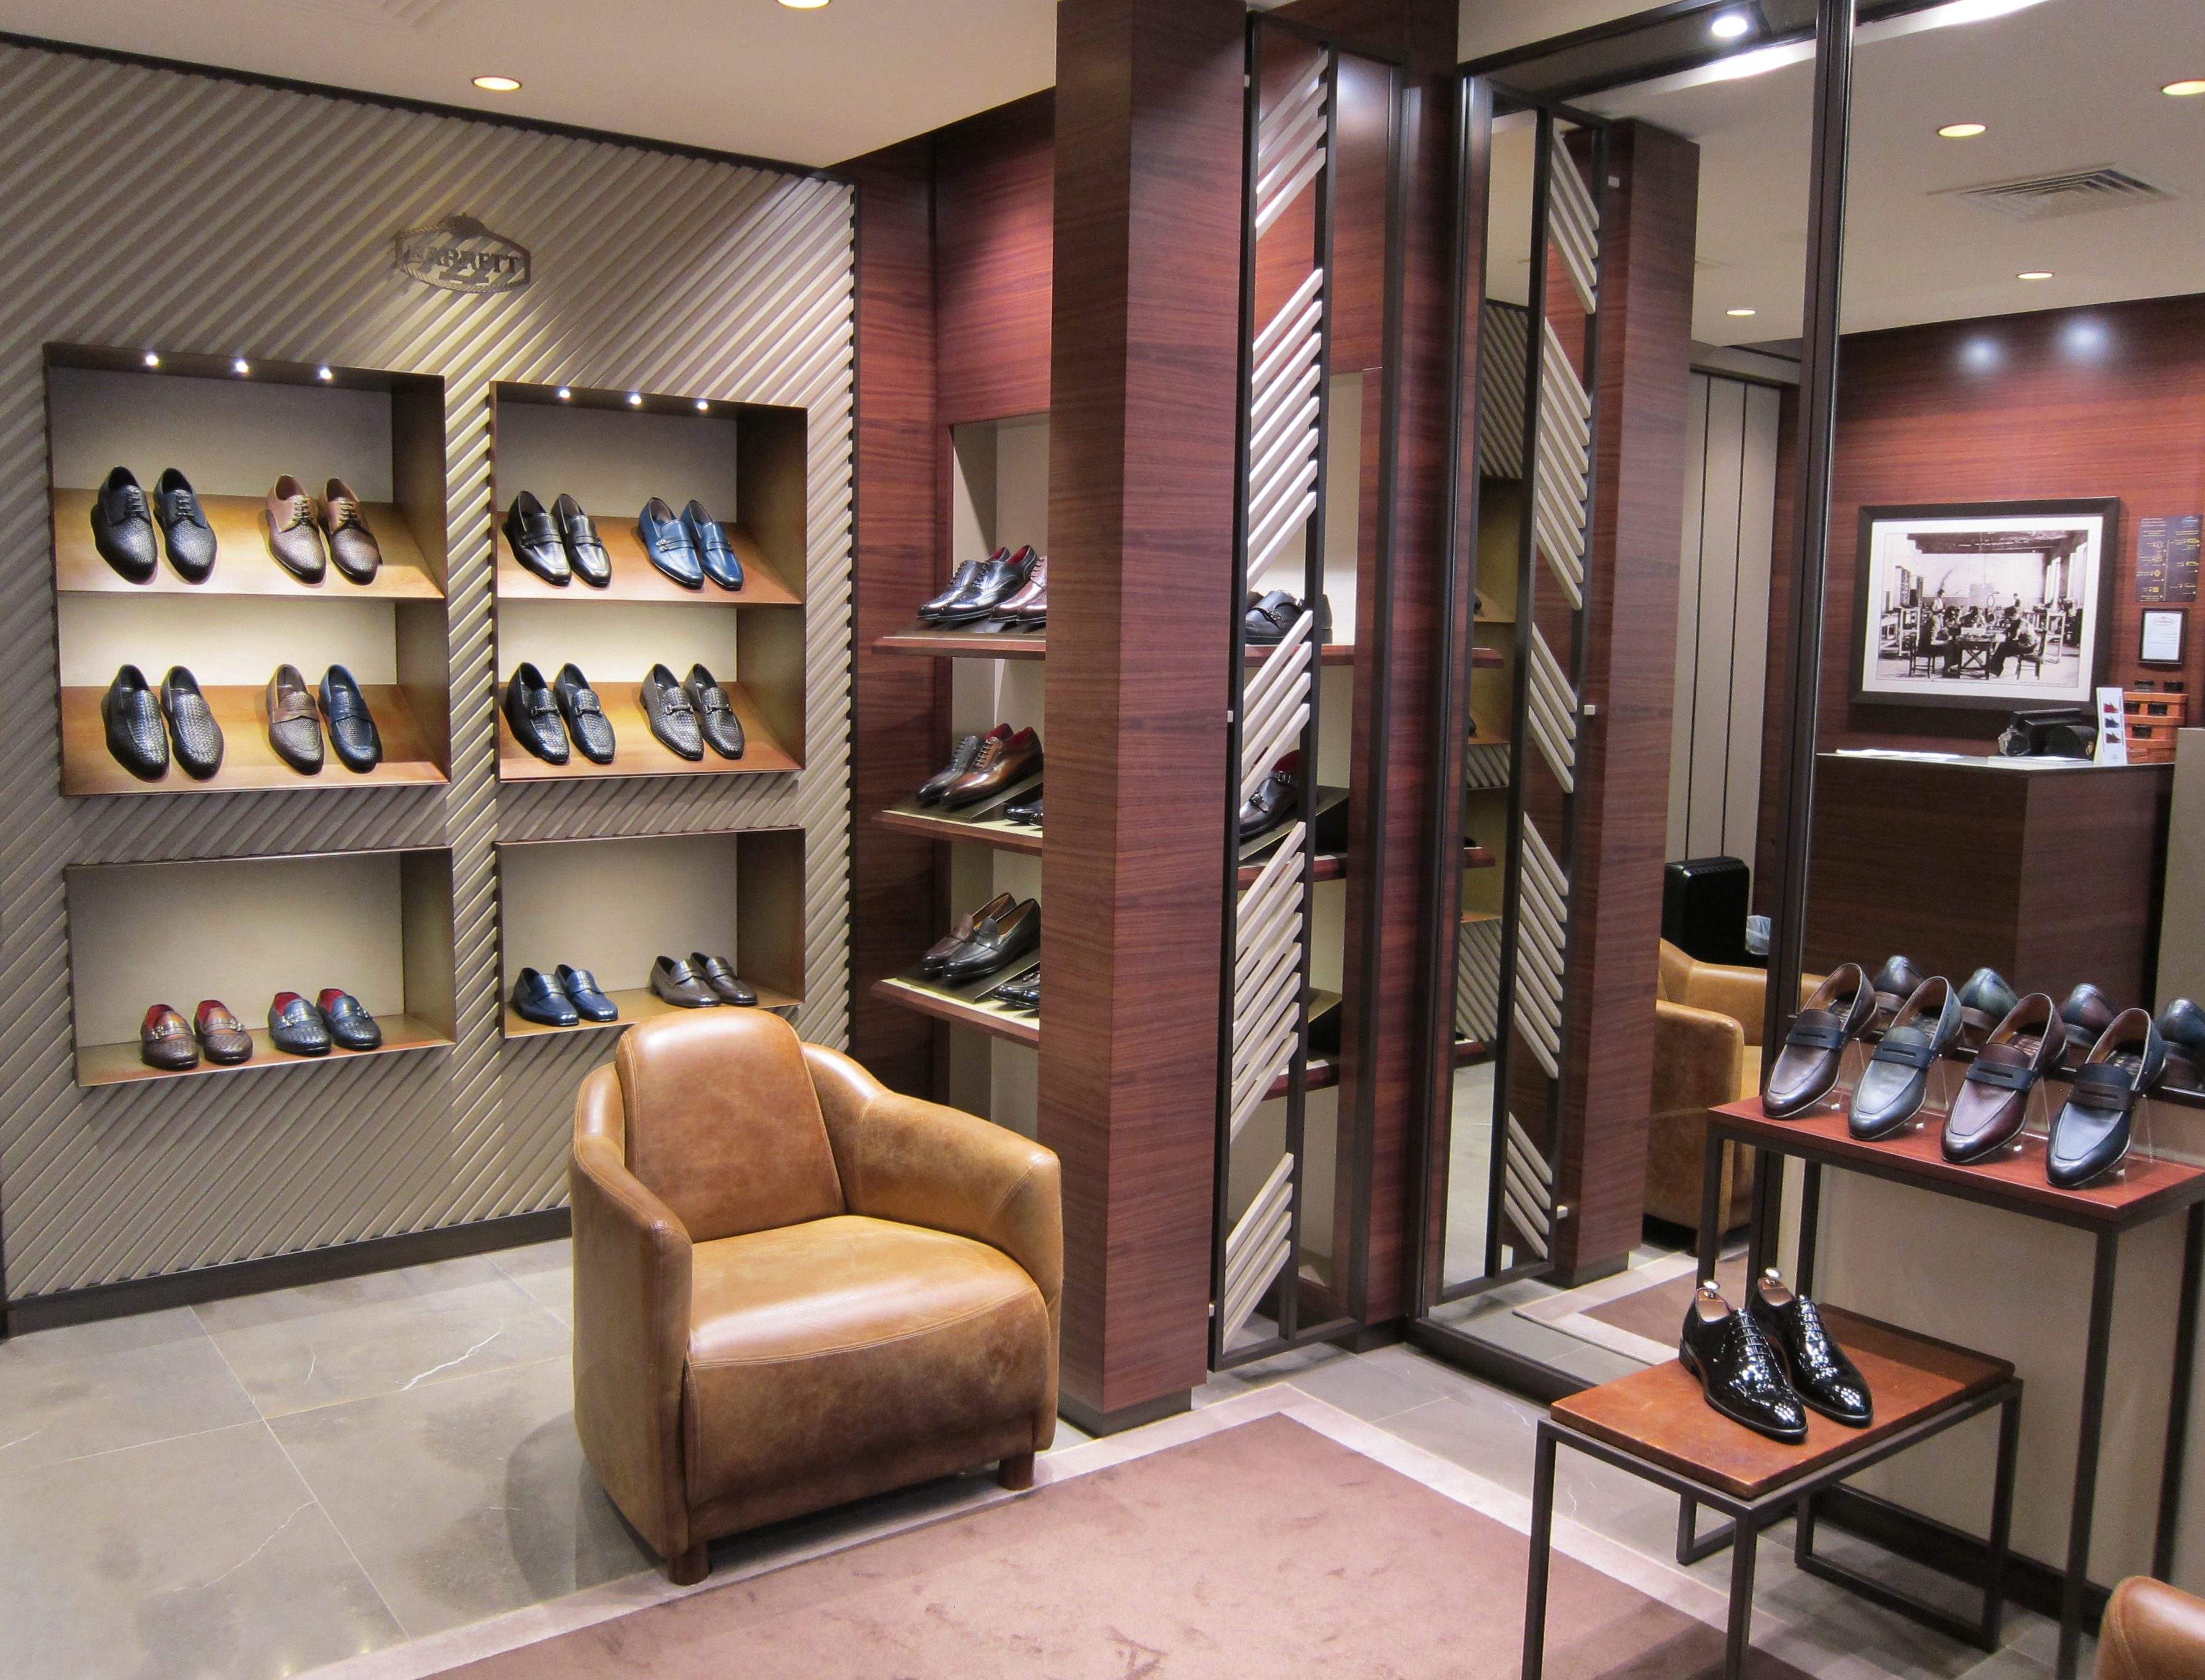 barret-chausseur-chaussure-luxe